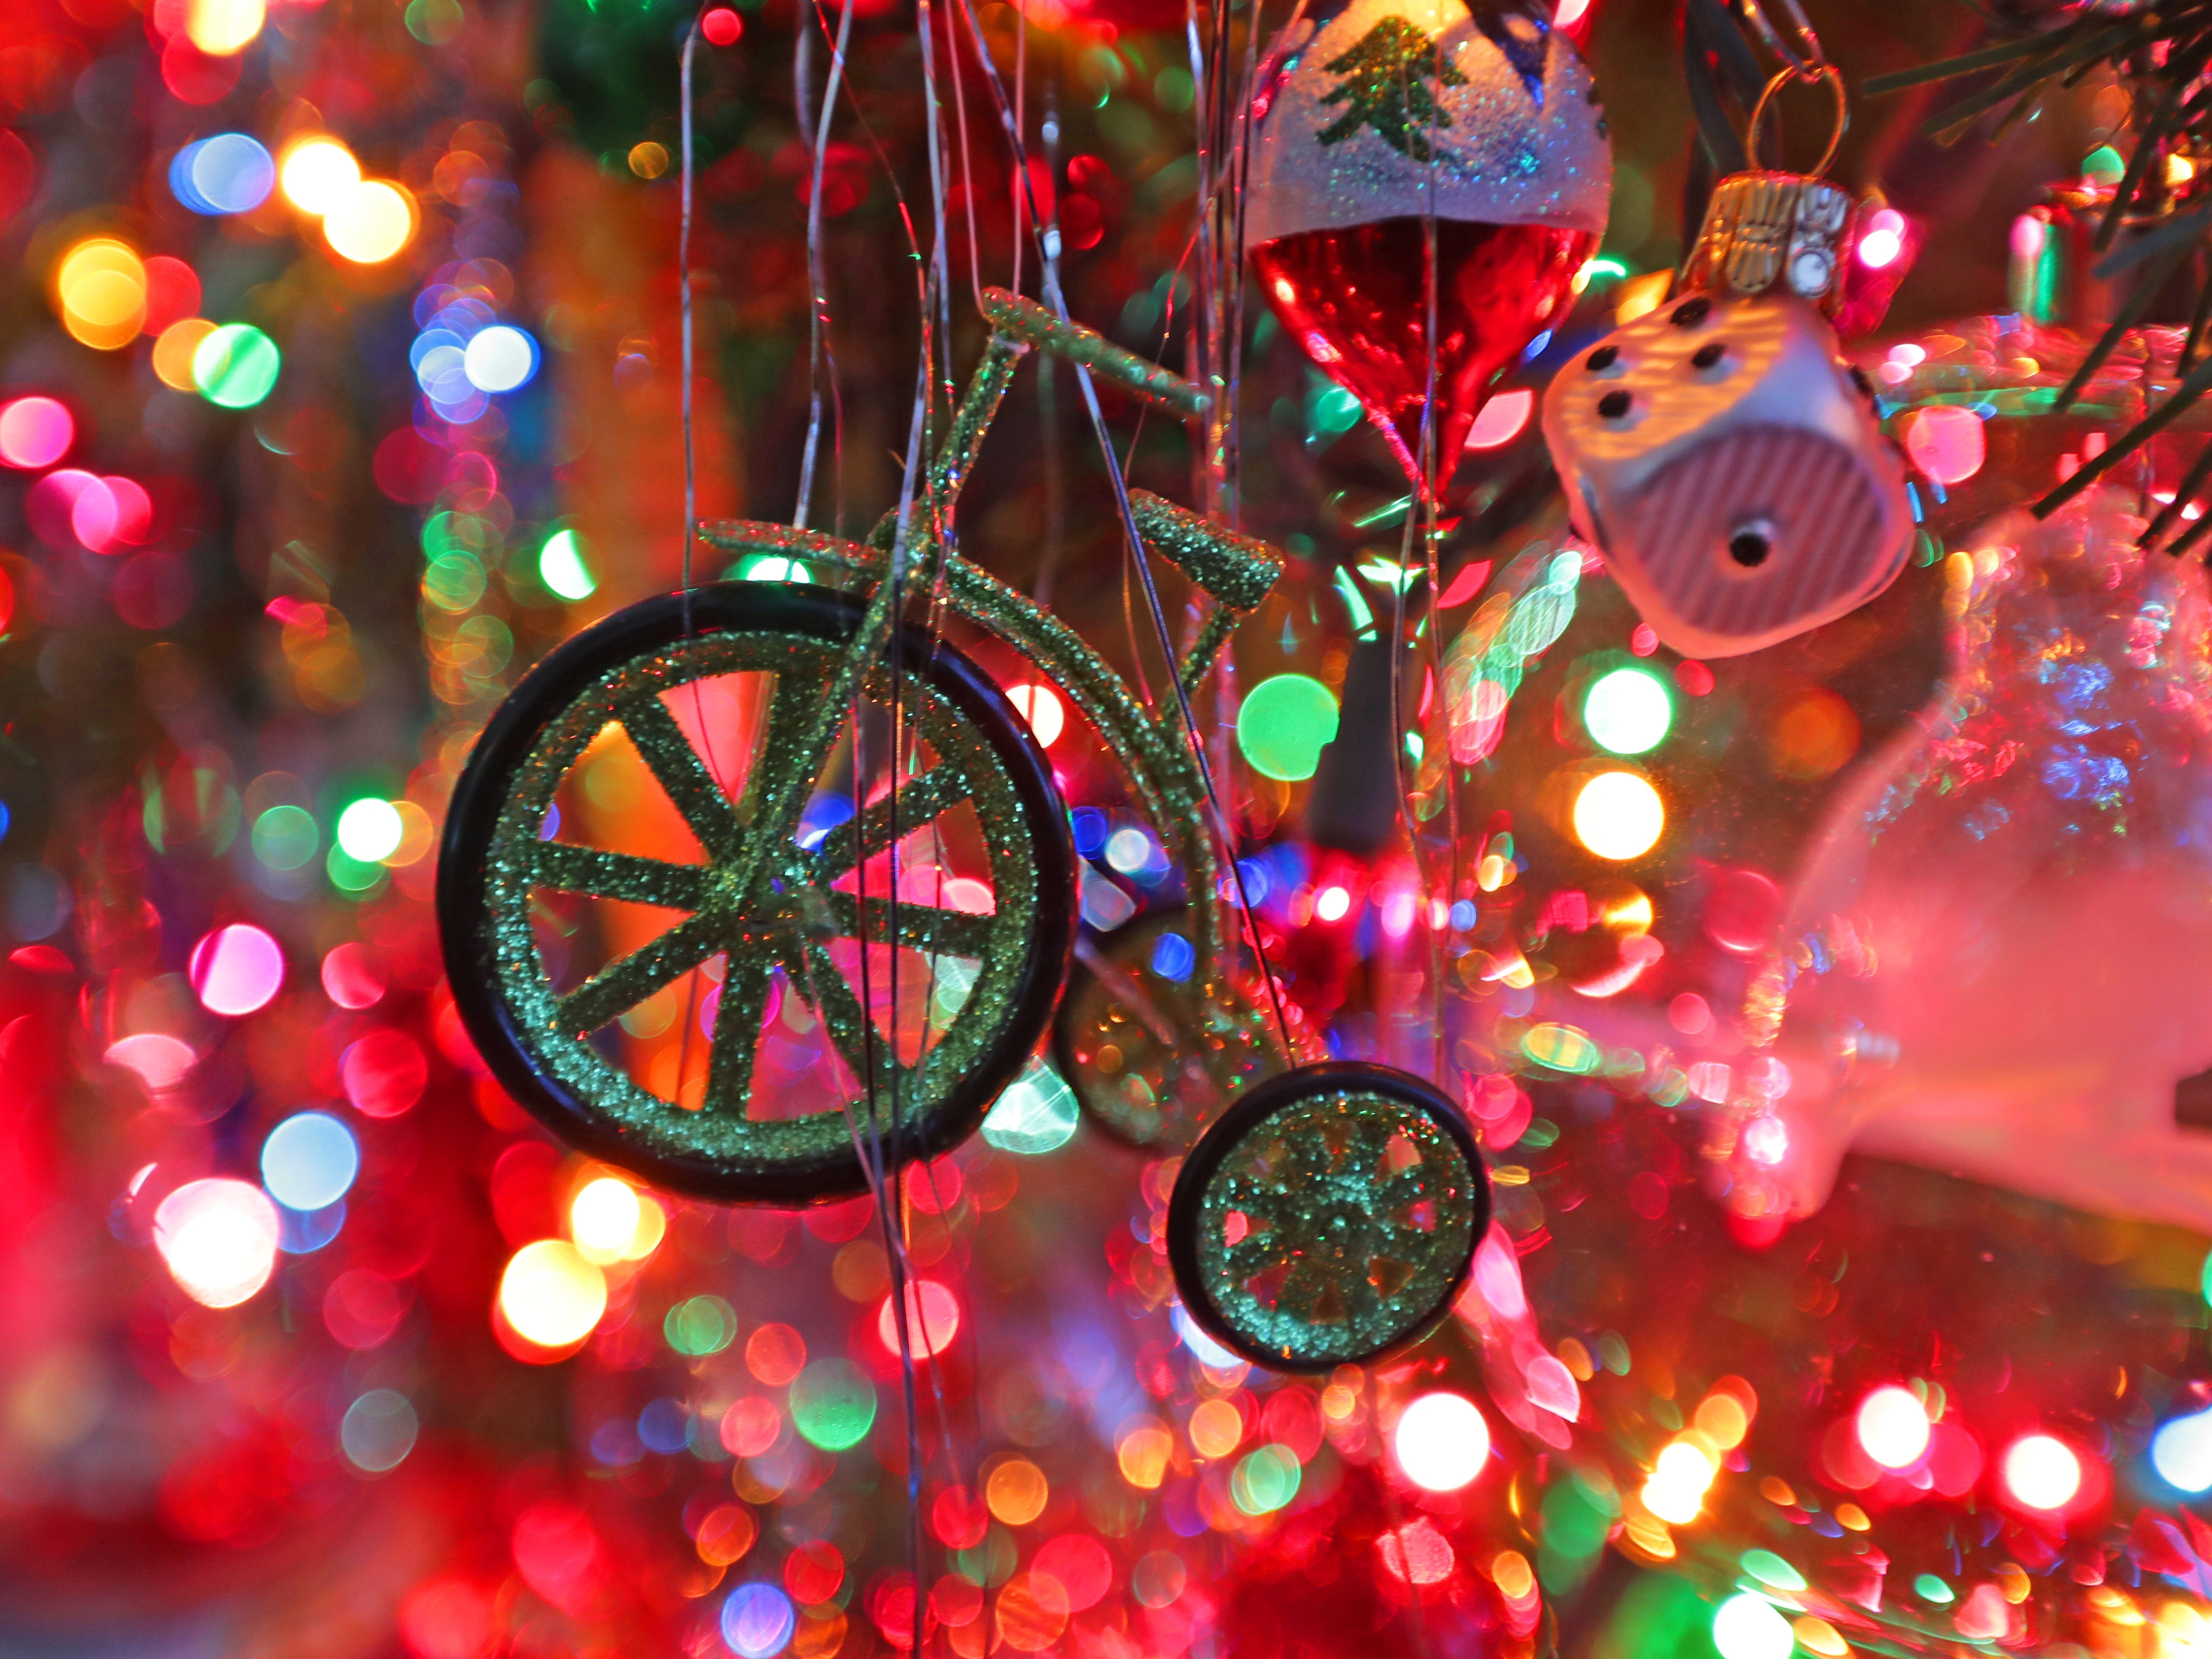 This glitter bicycle is one of Kim Harrison's favorite ornaments.